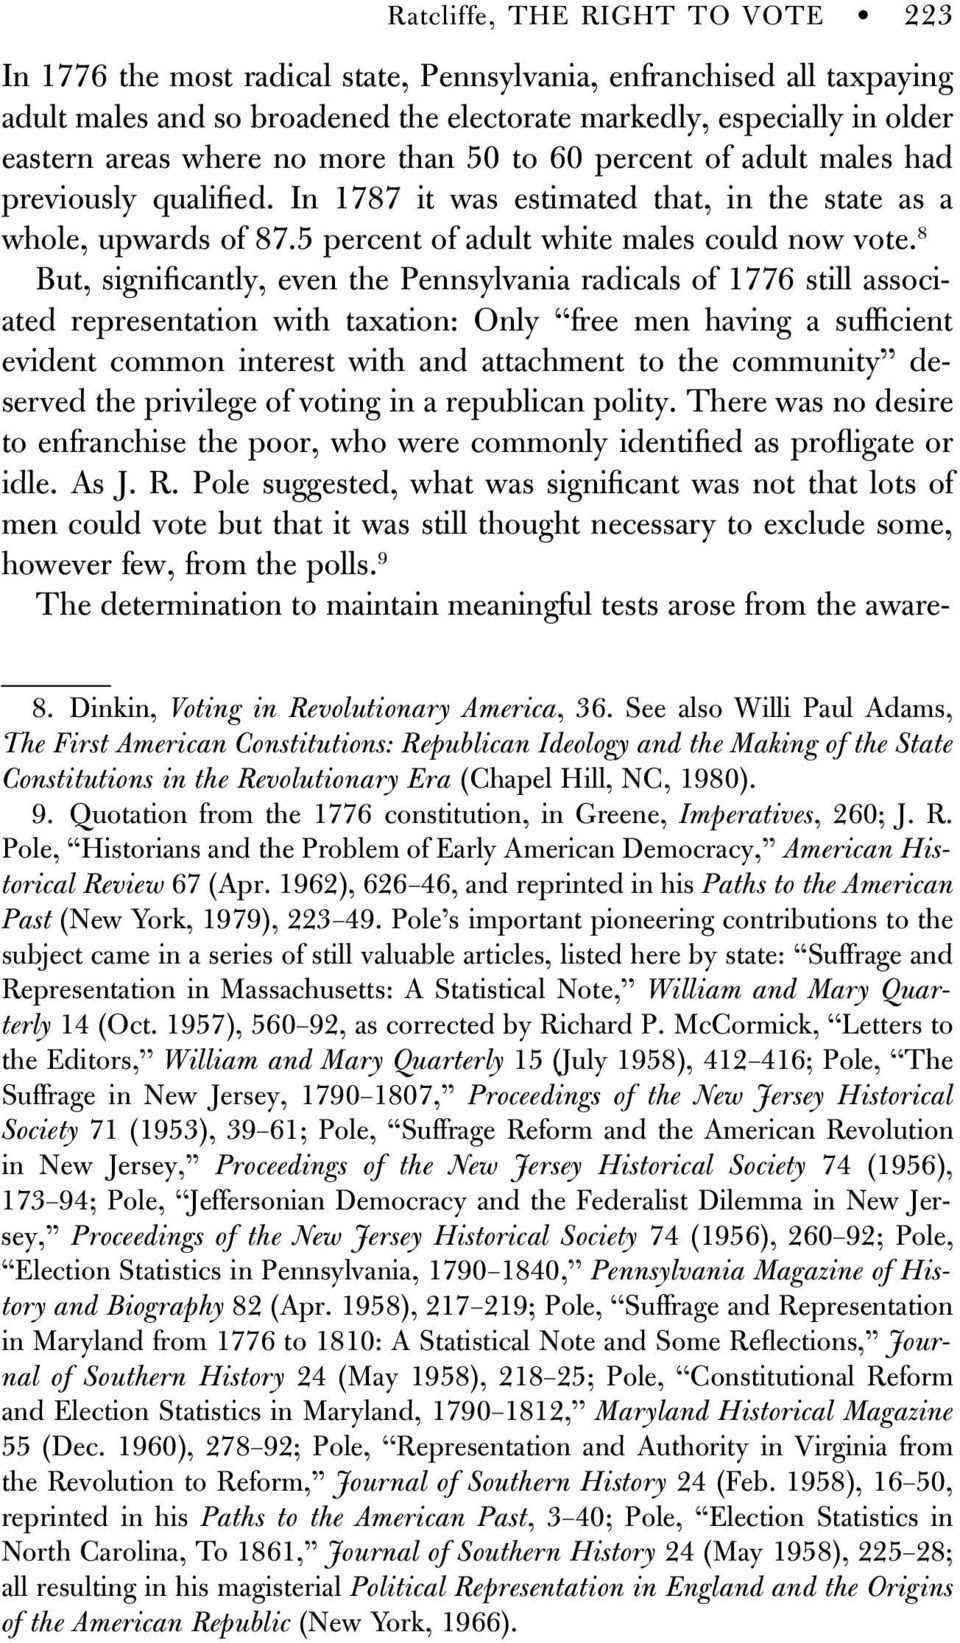 8 But, significantly, even the Pennsylvania radicals of 1776 still associated representation with taxation: Only free men having a sufficient evident common interest with and attachment to the